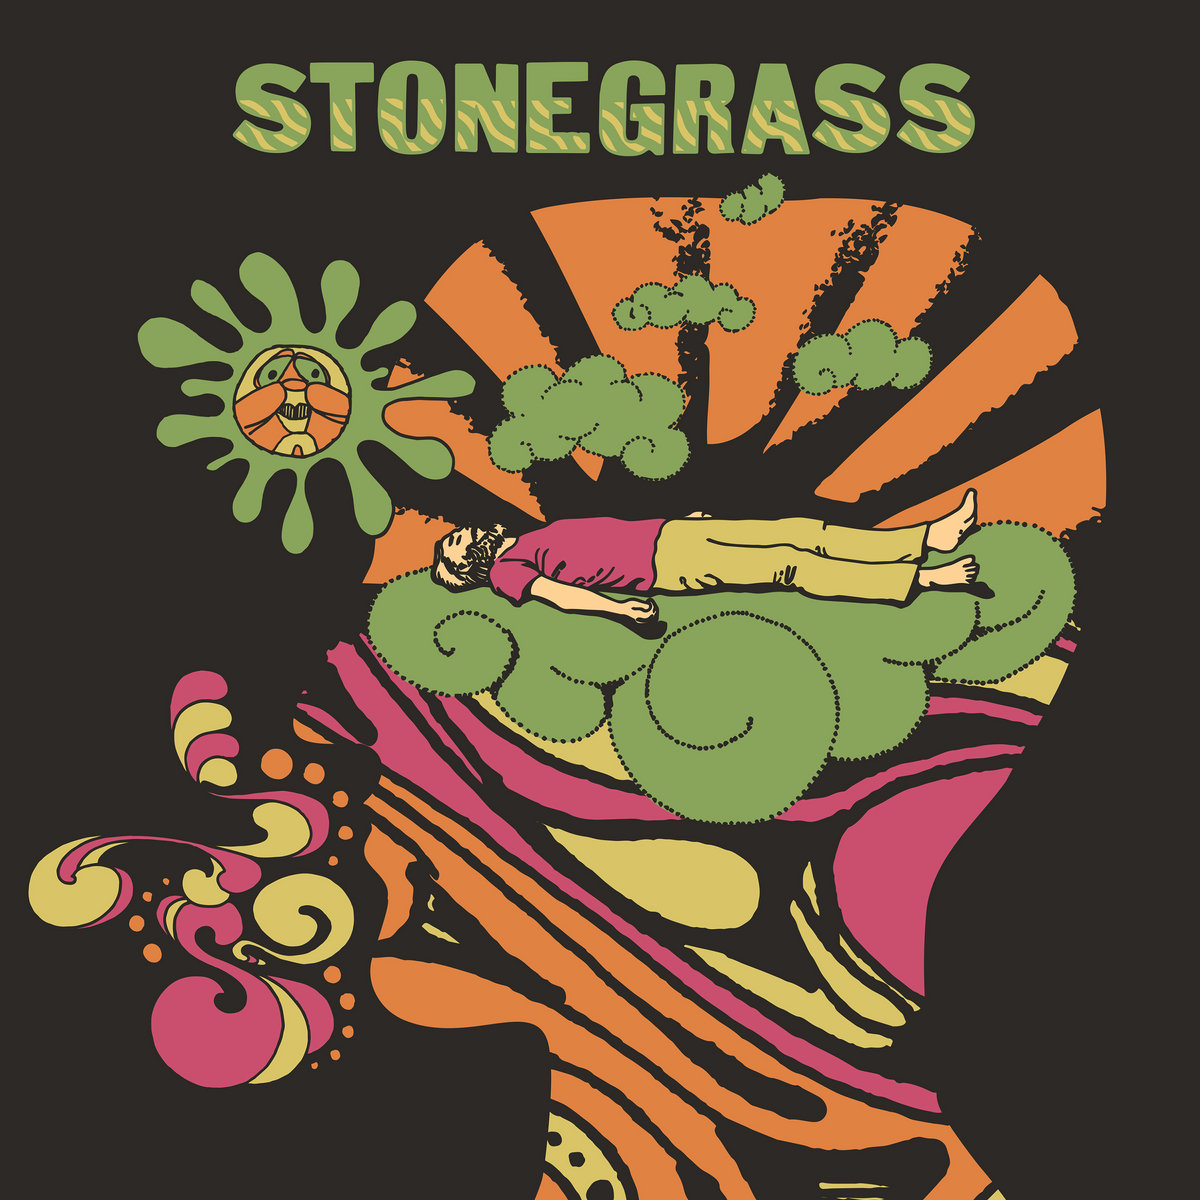 stonegrass self titled